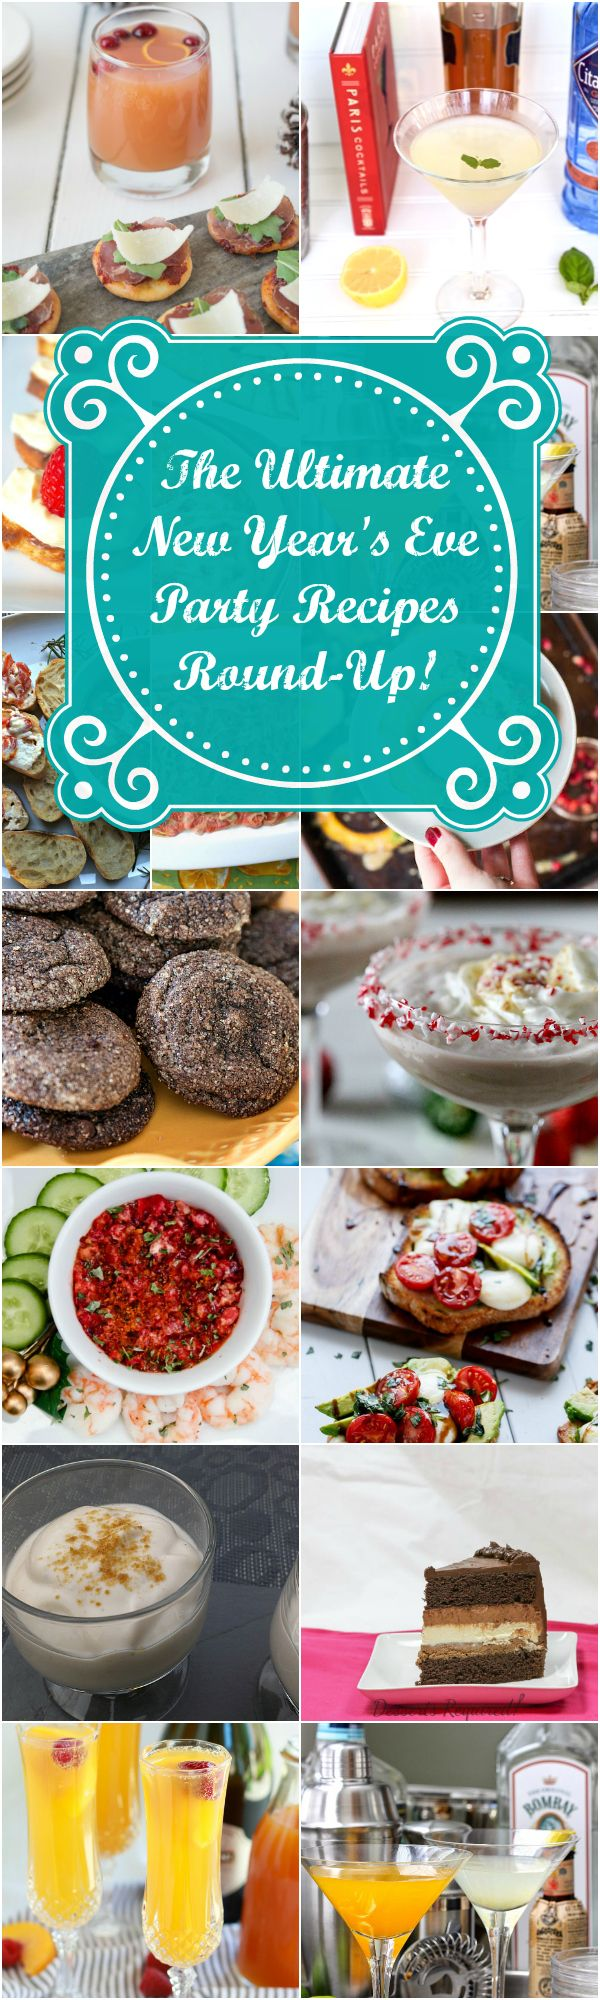 337 best Featuring Recipes from Two Healthy Kitchens images on Pinterest